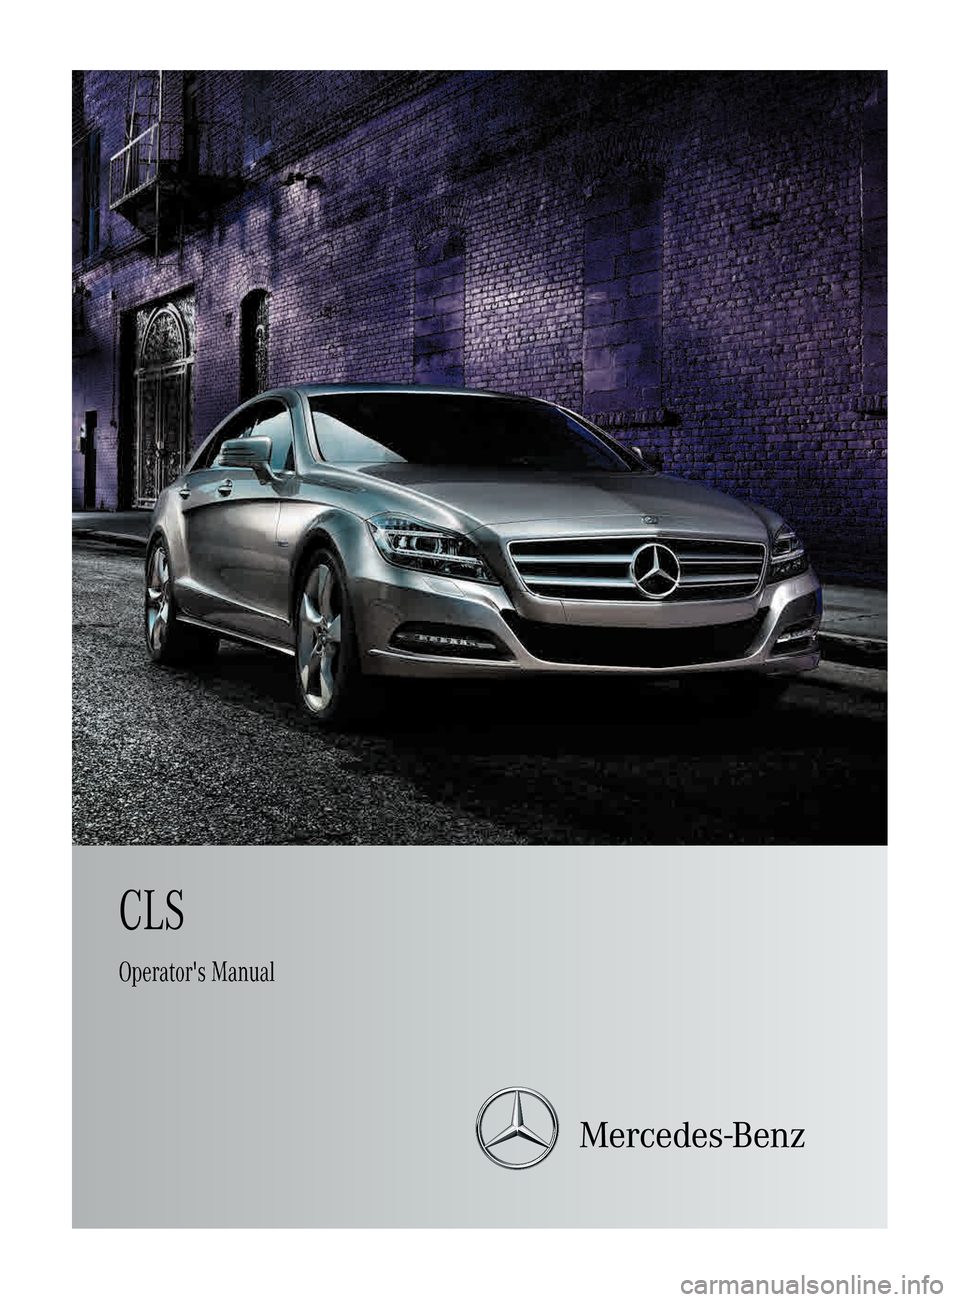 Mercedes benz cls class 2013 w218 owner 39 s manual for Mercedes benz manuals